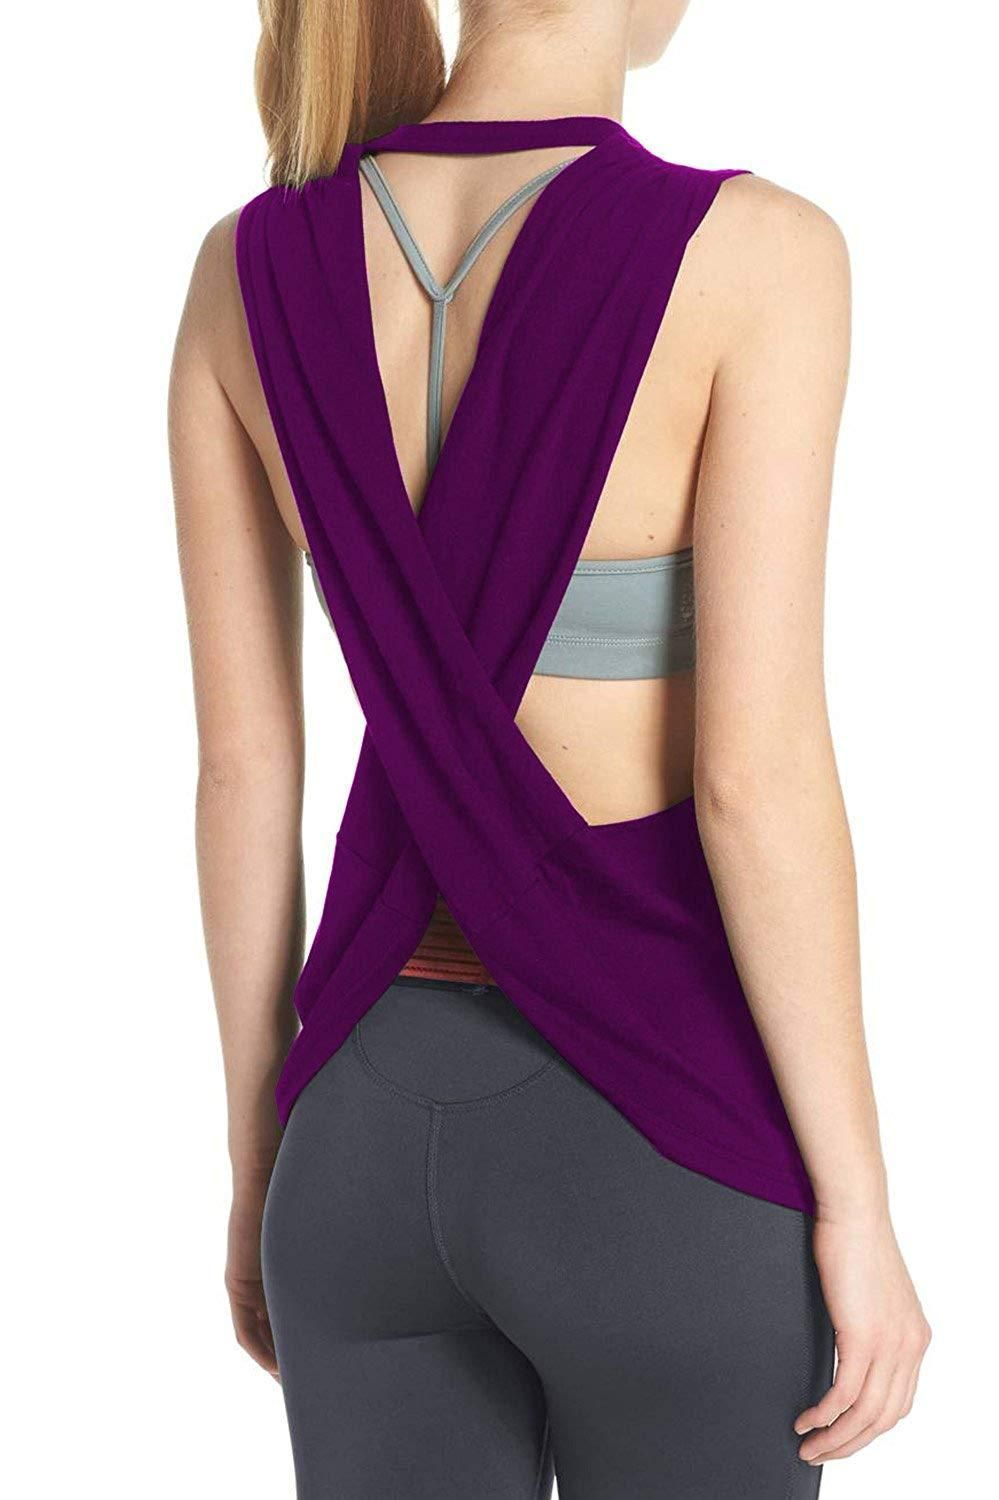 97c197a1271 Duppoly Sport Tank Top Cross Back Yoga Shirt Cute Running Gym Activewear Workout  Clothes